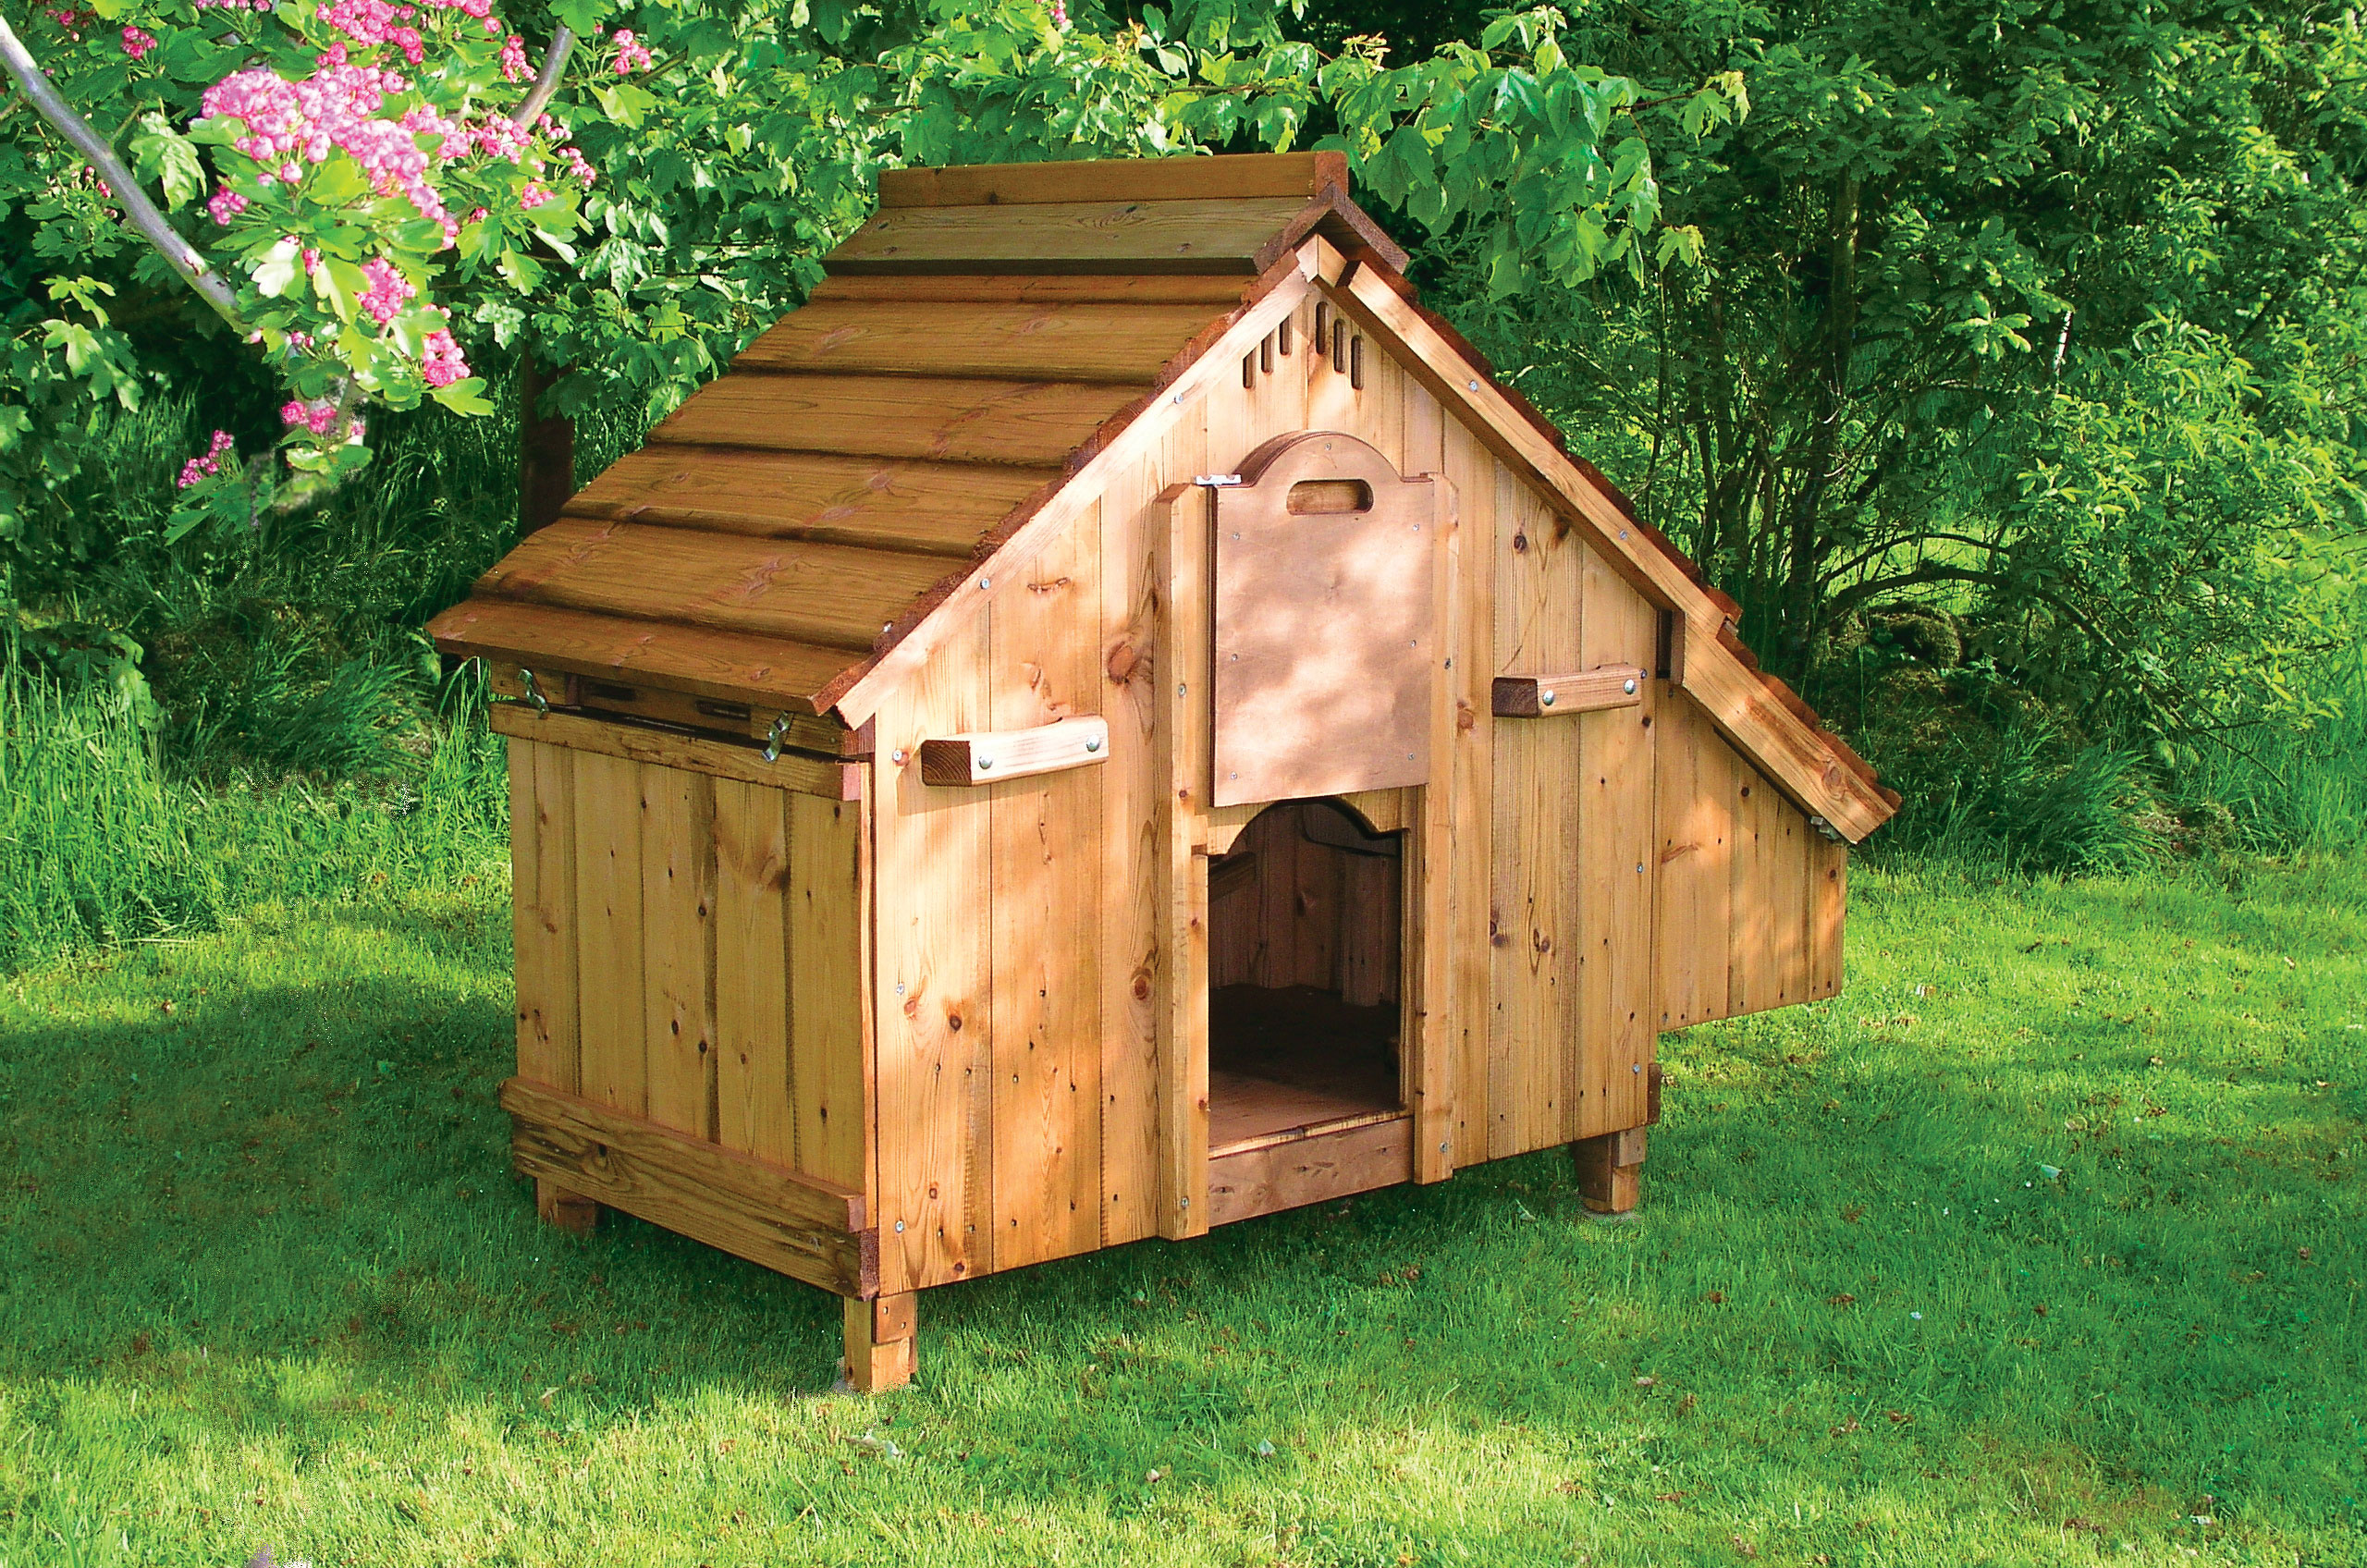 Chicken House Classy Lenham Chicken Coop  Wooden Chicken Ark For 12 Birds Review